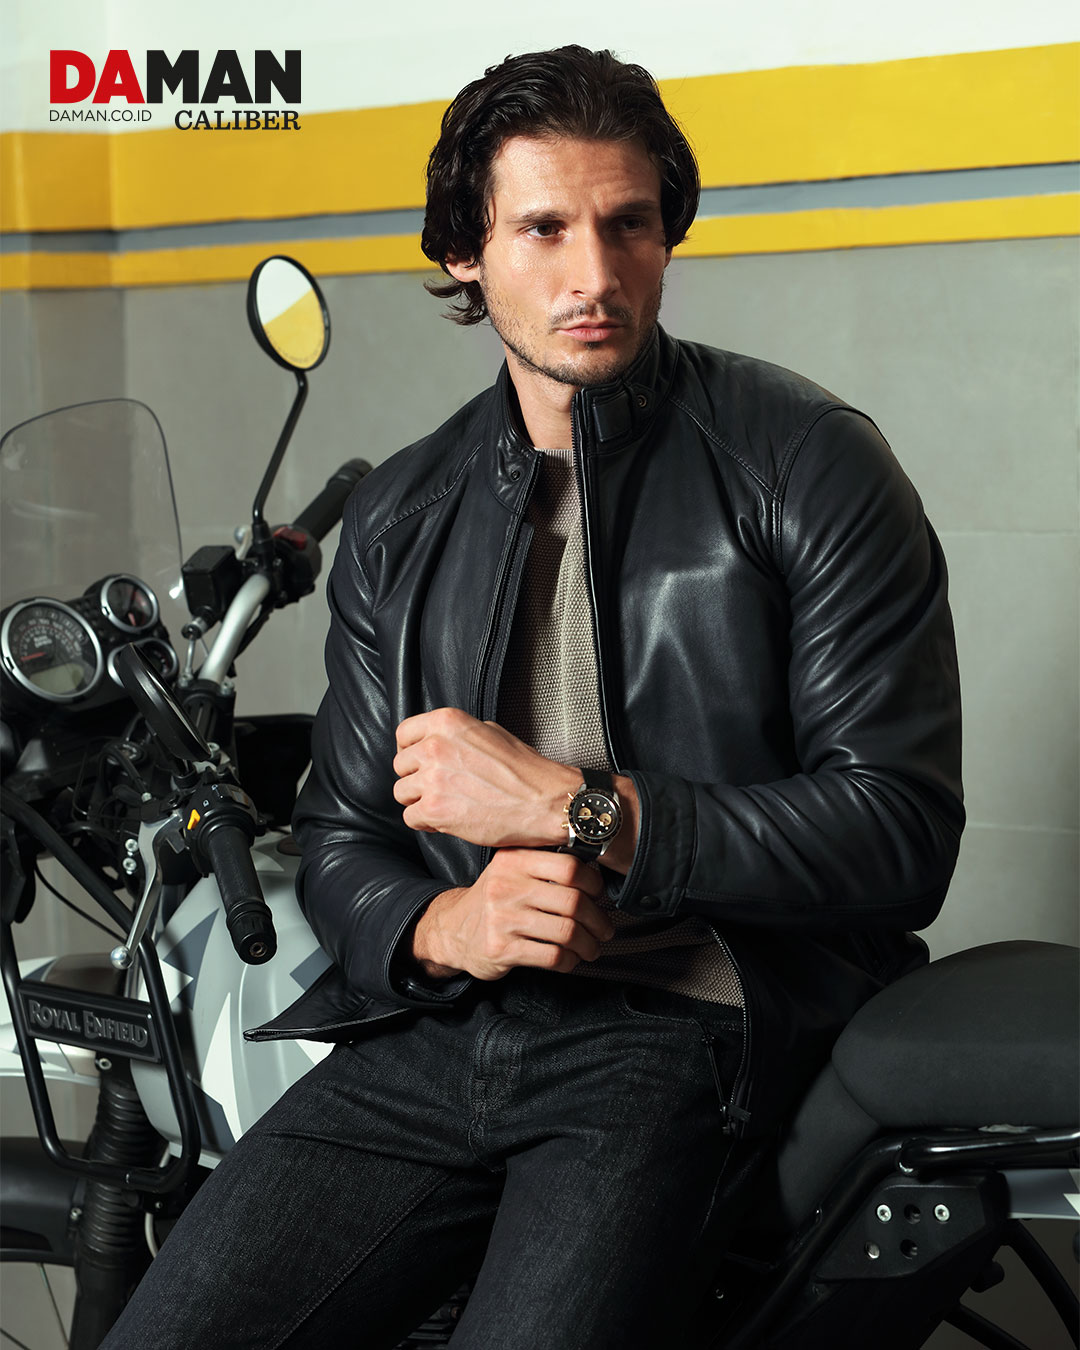 Tudor Black Bay Chrono S&G in stainless steel with black fabric strap / Outfit by Massimo Dutti / Royal Enfield Himalayan